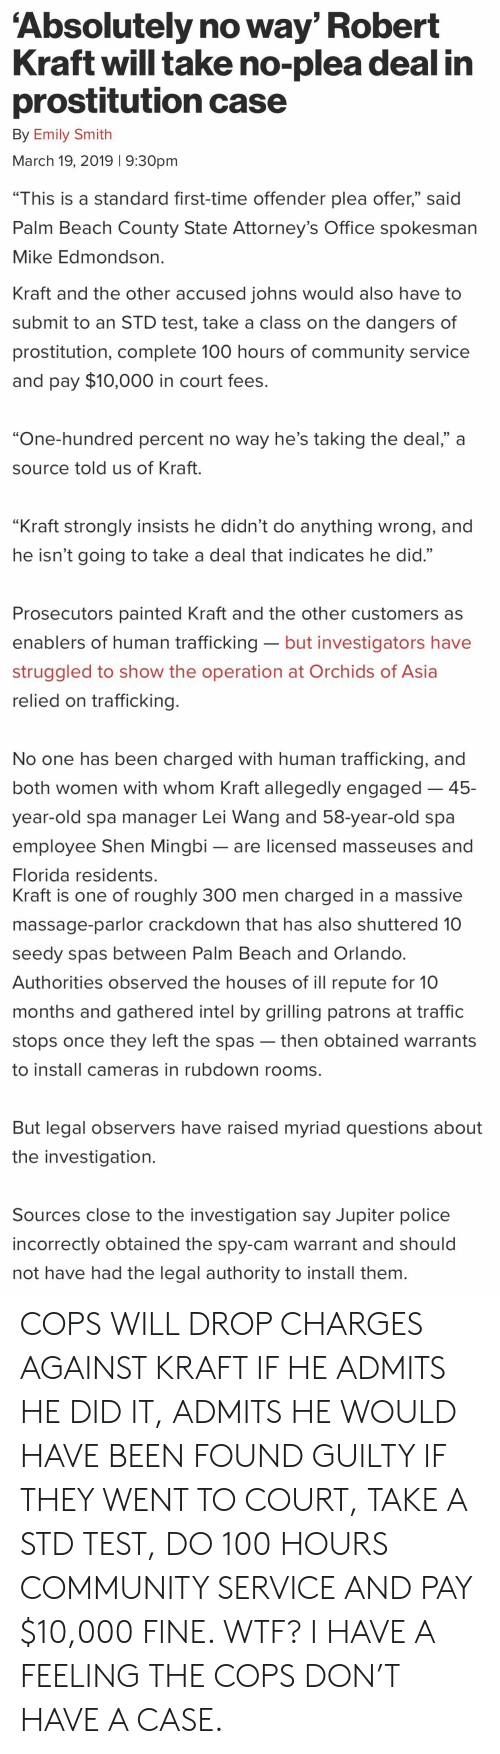 """Anaconda, Community, and Massage: Absolutely no way' Robert  Kraft will take no-plea deal in  prostitution case  By Emily Smith  March 19, 2019 1 9:30pm  """"This is a standard first-time offender plea offer,"""" said  Palm Beach County State Attorney's Office spokesman  Mike Edmondson  Kraft and the other accused iohns would also have to  submit to an STD test, take a class on the dangers of  prostitution, complete 100 hours of community service  and pay $10,000 in court fees.  """"One-hundred percent no way he's taking the deal,"""" a  source told us of Kraft.  """"Kraft strongly insists he didn't do anything wrong, and  he isn't going to take a deal that indicates he did.""""  Prosecutors painted Kraft and the other customers a:s  enablers of human trafficking- but investigators have  struggled to show the operation at Orchids of Asia  relied on trafficking.  No one has been charged with human trafficking, and  both women with whom Kraft allegedly engaged-45-  year-old spa manager Lei Wang and 58-year-old spa  employee Shen Mingbi- are licensed masseuses and  Florida residents.  Kraft is one of roughly 300 men charged in a massive  massage-parlor crackdown that has also shuttered 10  seedy spas between Palm Beach and Orlando  Authorities observed the houses of ill repute for 10  months and gathered intel by grilling patrons at traffic  stops once they left the spas -then obtained warrants  to install cameras in rubdown rooms.  But legal observers have raised myriad questions about  the investigation.  Sources close to the investigation say Jupiter police  incorrectly obtained the spy-cam warrant and should  not have had the legal authority to install them COPS WILL DROP CHARGES AGAINST KRAFT IF HE ADMITS HE DID IT, ADMITS HE WOULD HAVE BEEN FOUND GUILTY IF THEY WENT TO COURT, TAKE A STD TEST, DO 100 HOURS COMMUNITY SERVICE AND PAY $10,000 FINE. WTF? I HAVE A FEELING THE COPS DON'T HAVE A CASE."""